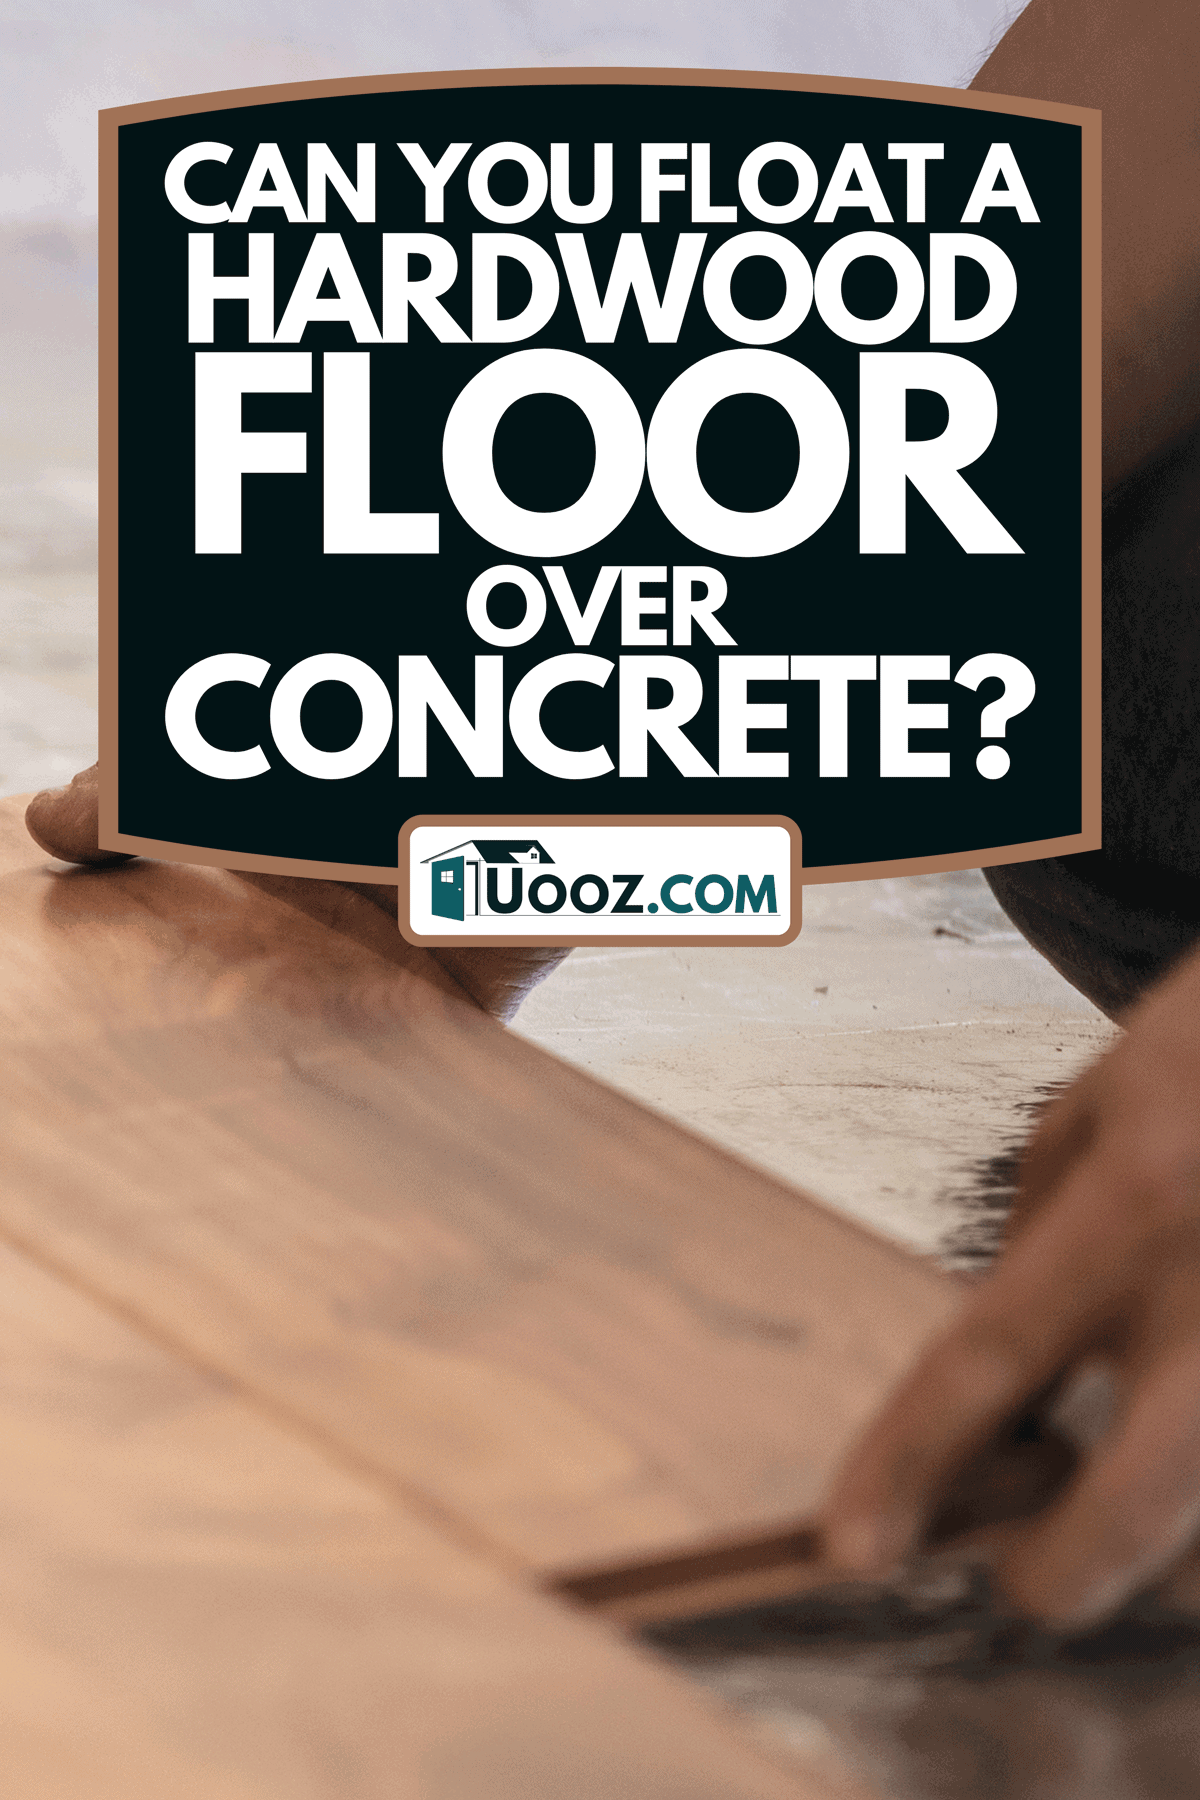 A man installing wood flooring in home, Can You Float A Hardwood Floor Over Concrete?